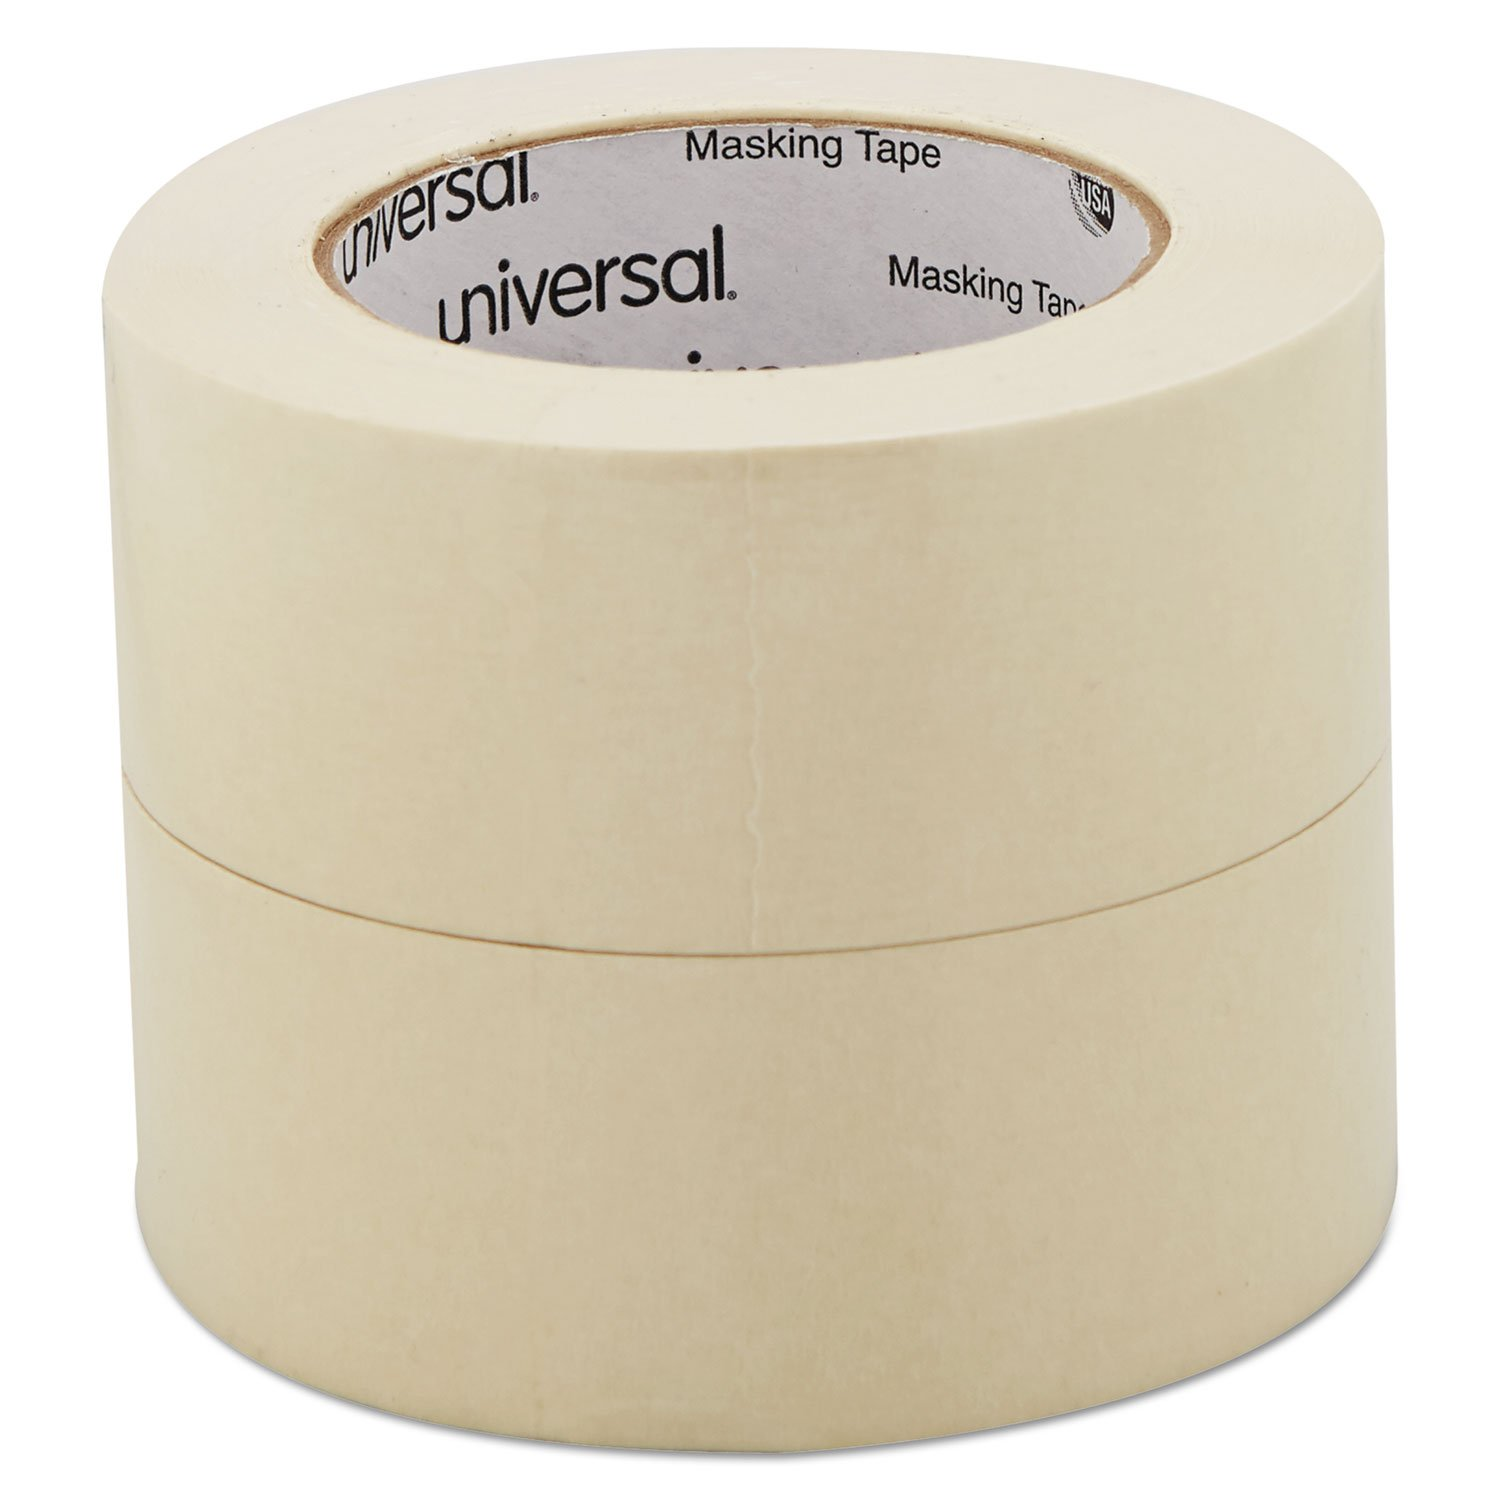 General Purpose Masking Tape, 2 2 2 x 60 yards, 3 Core, 2 Pack, Sold as 1 Package B0015ZQQUC | Internationale Wahl  ce98be